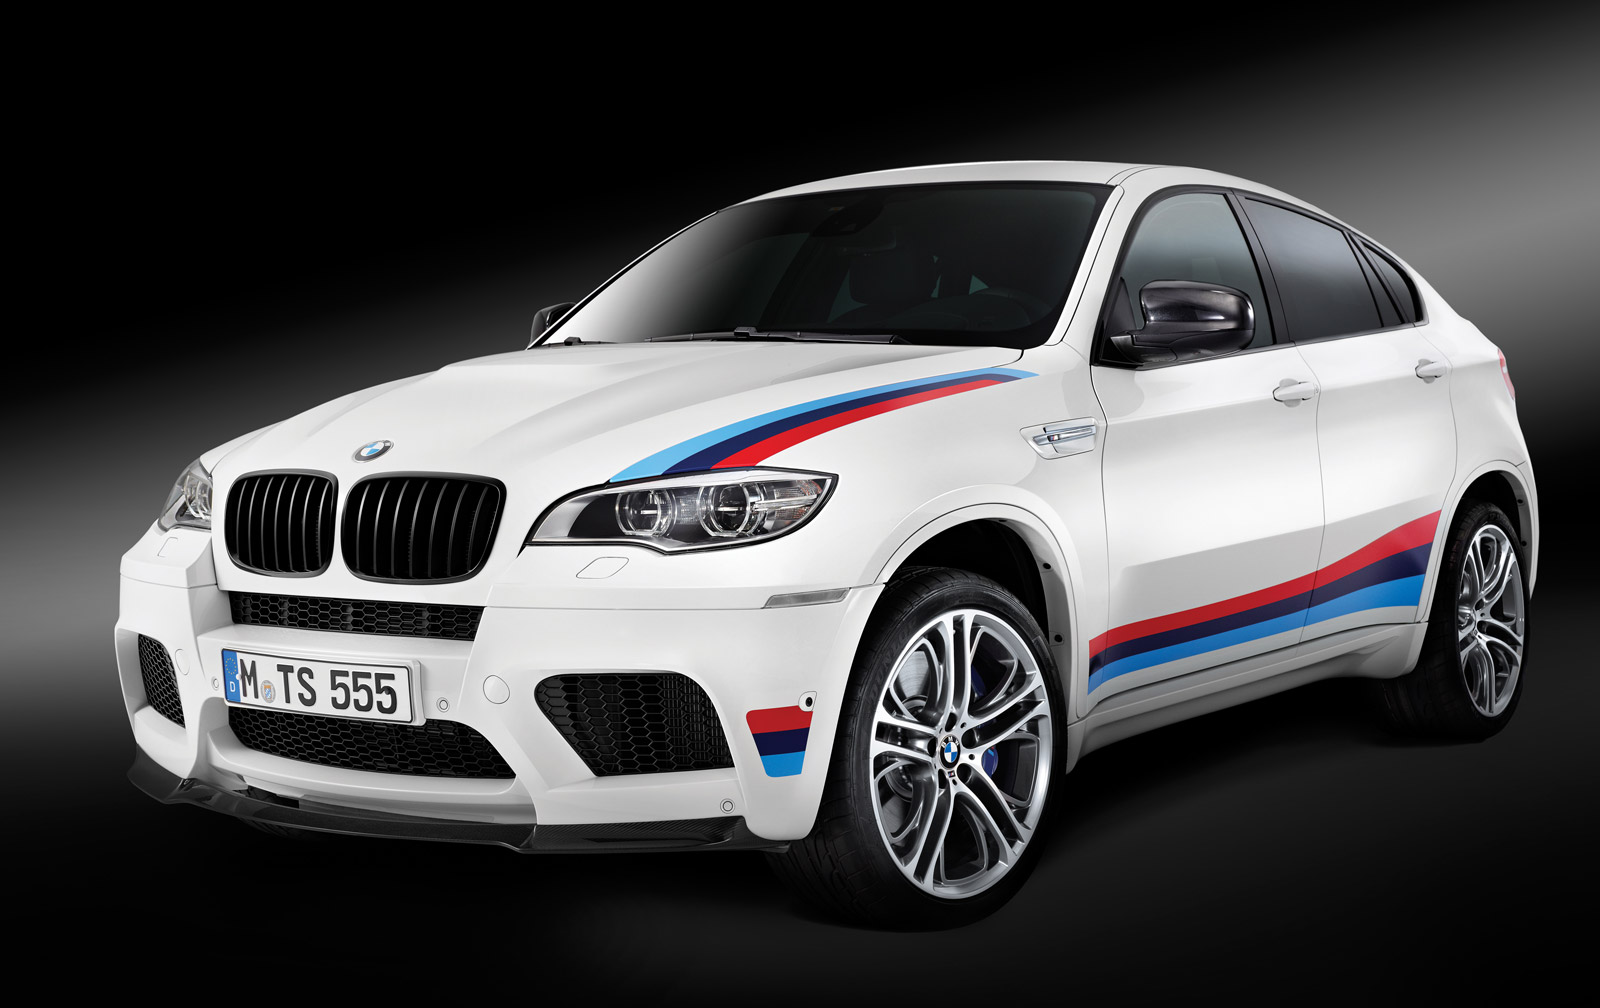 Bmw X6 M Design Edition Limited To Just 100 Units